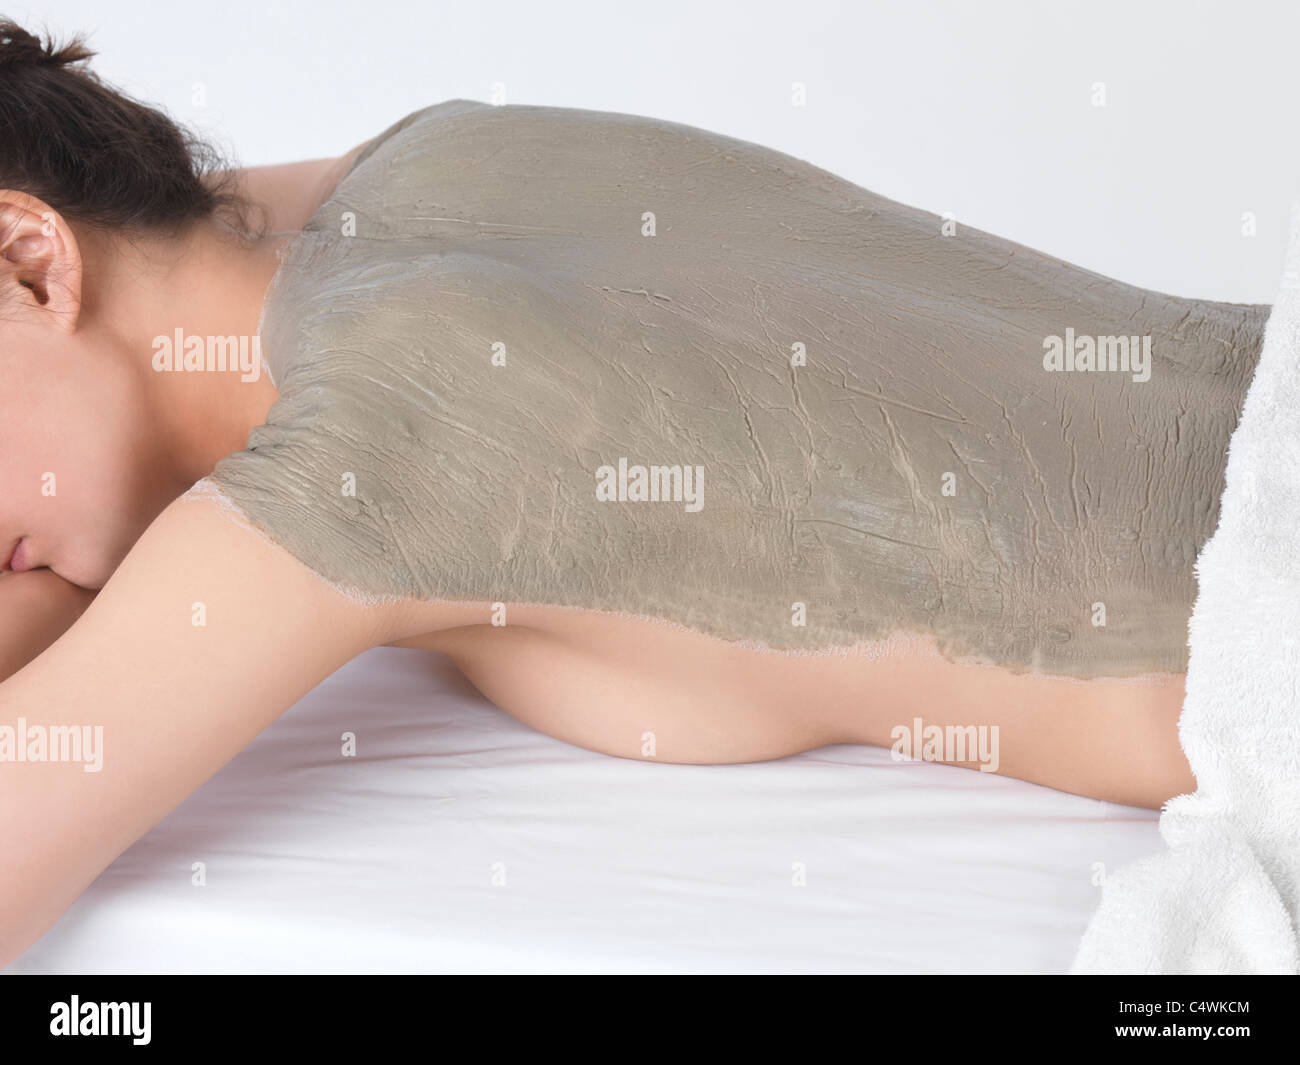 Woman with bentonite clay body wrap mask on her back - Stock Image